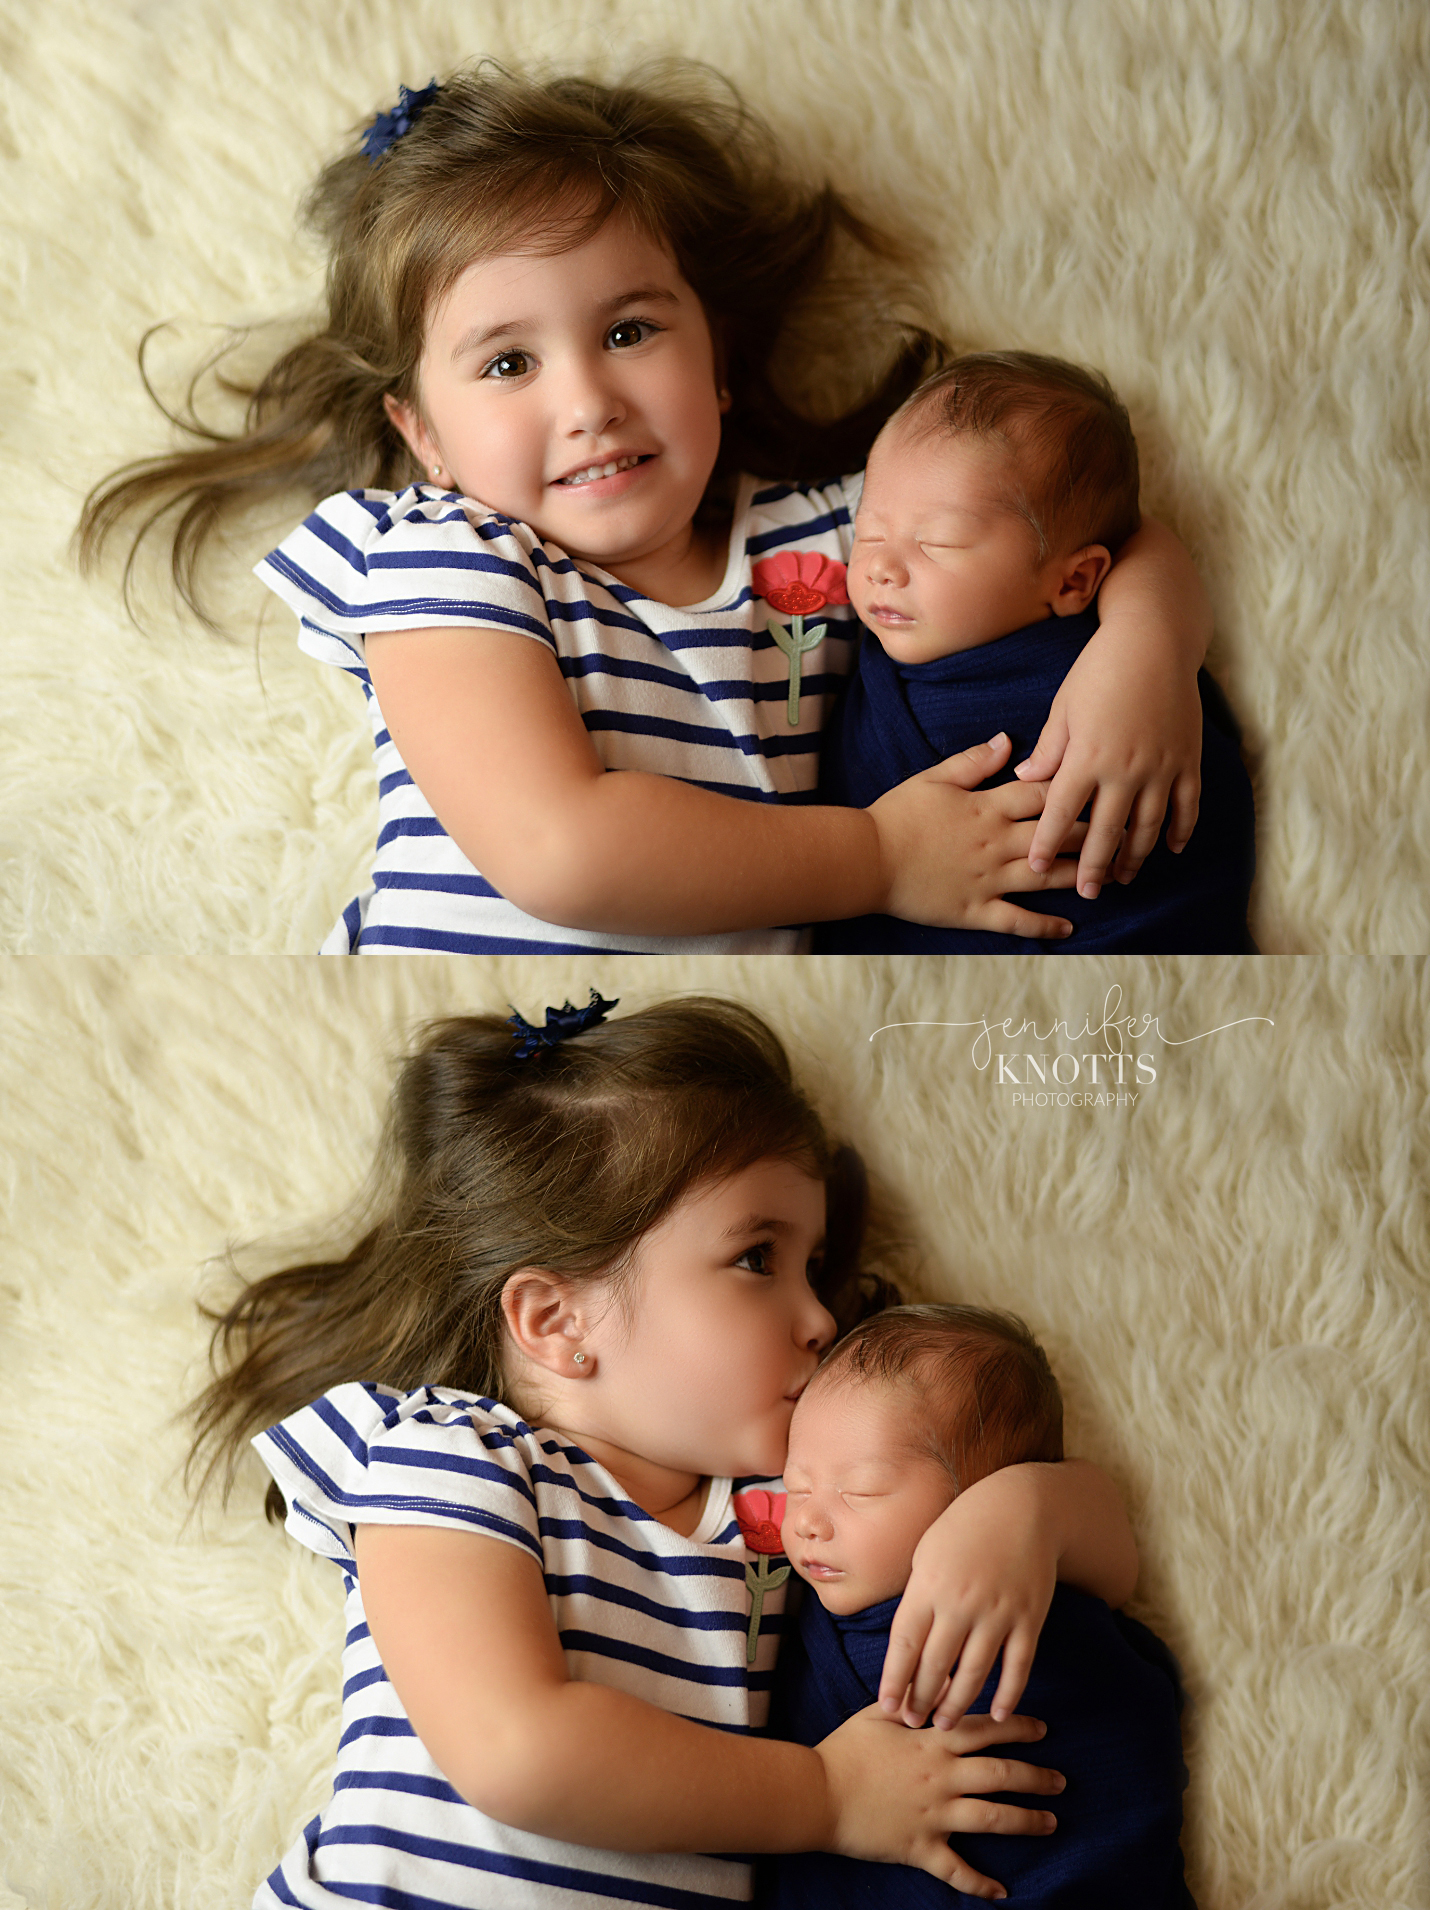 big sister hugs swaddled baby brother while resting on cream fur background